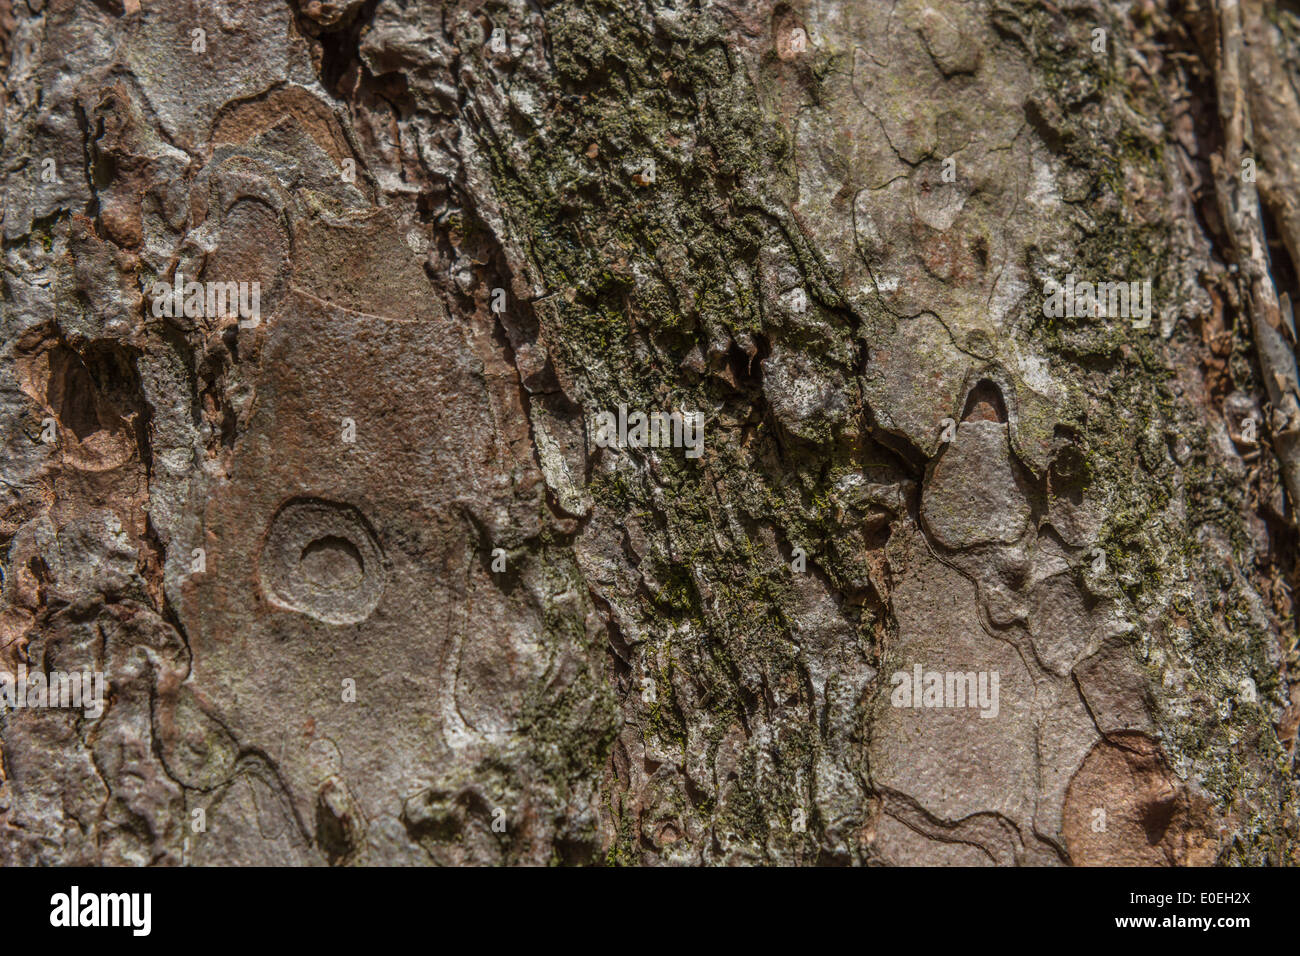 Close detail of the tree bark of a Horse-Chestnut / Aesculus hippocastanum tree. Tree bark close up. - Stock Image